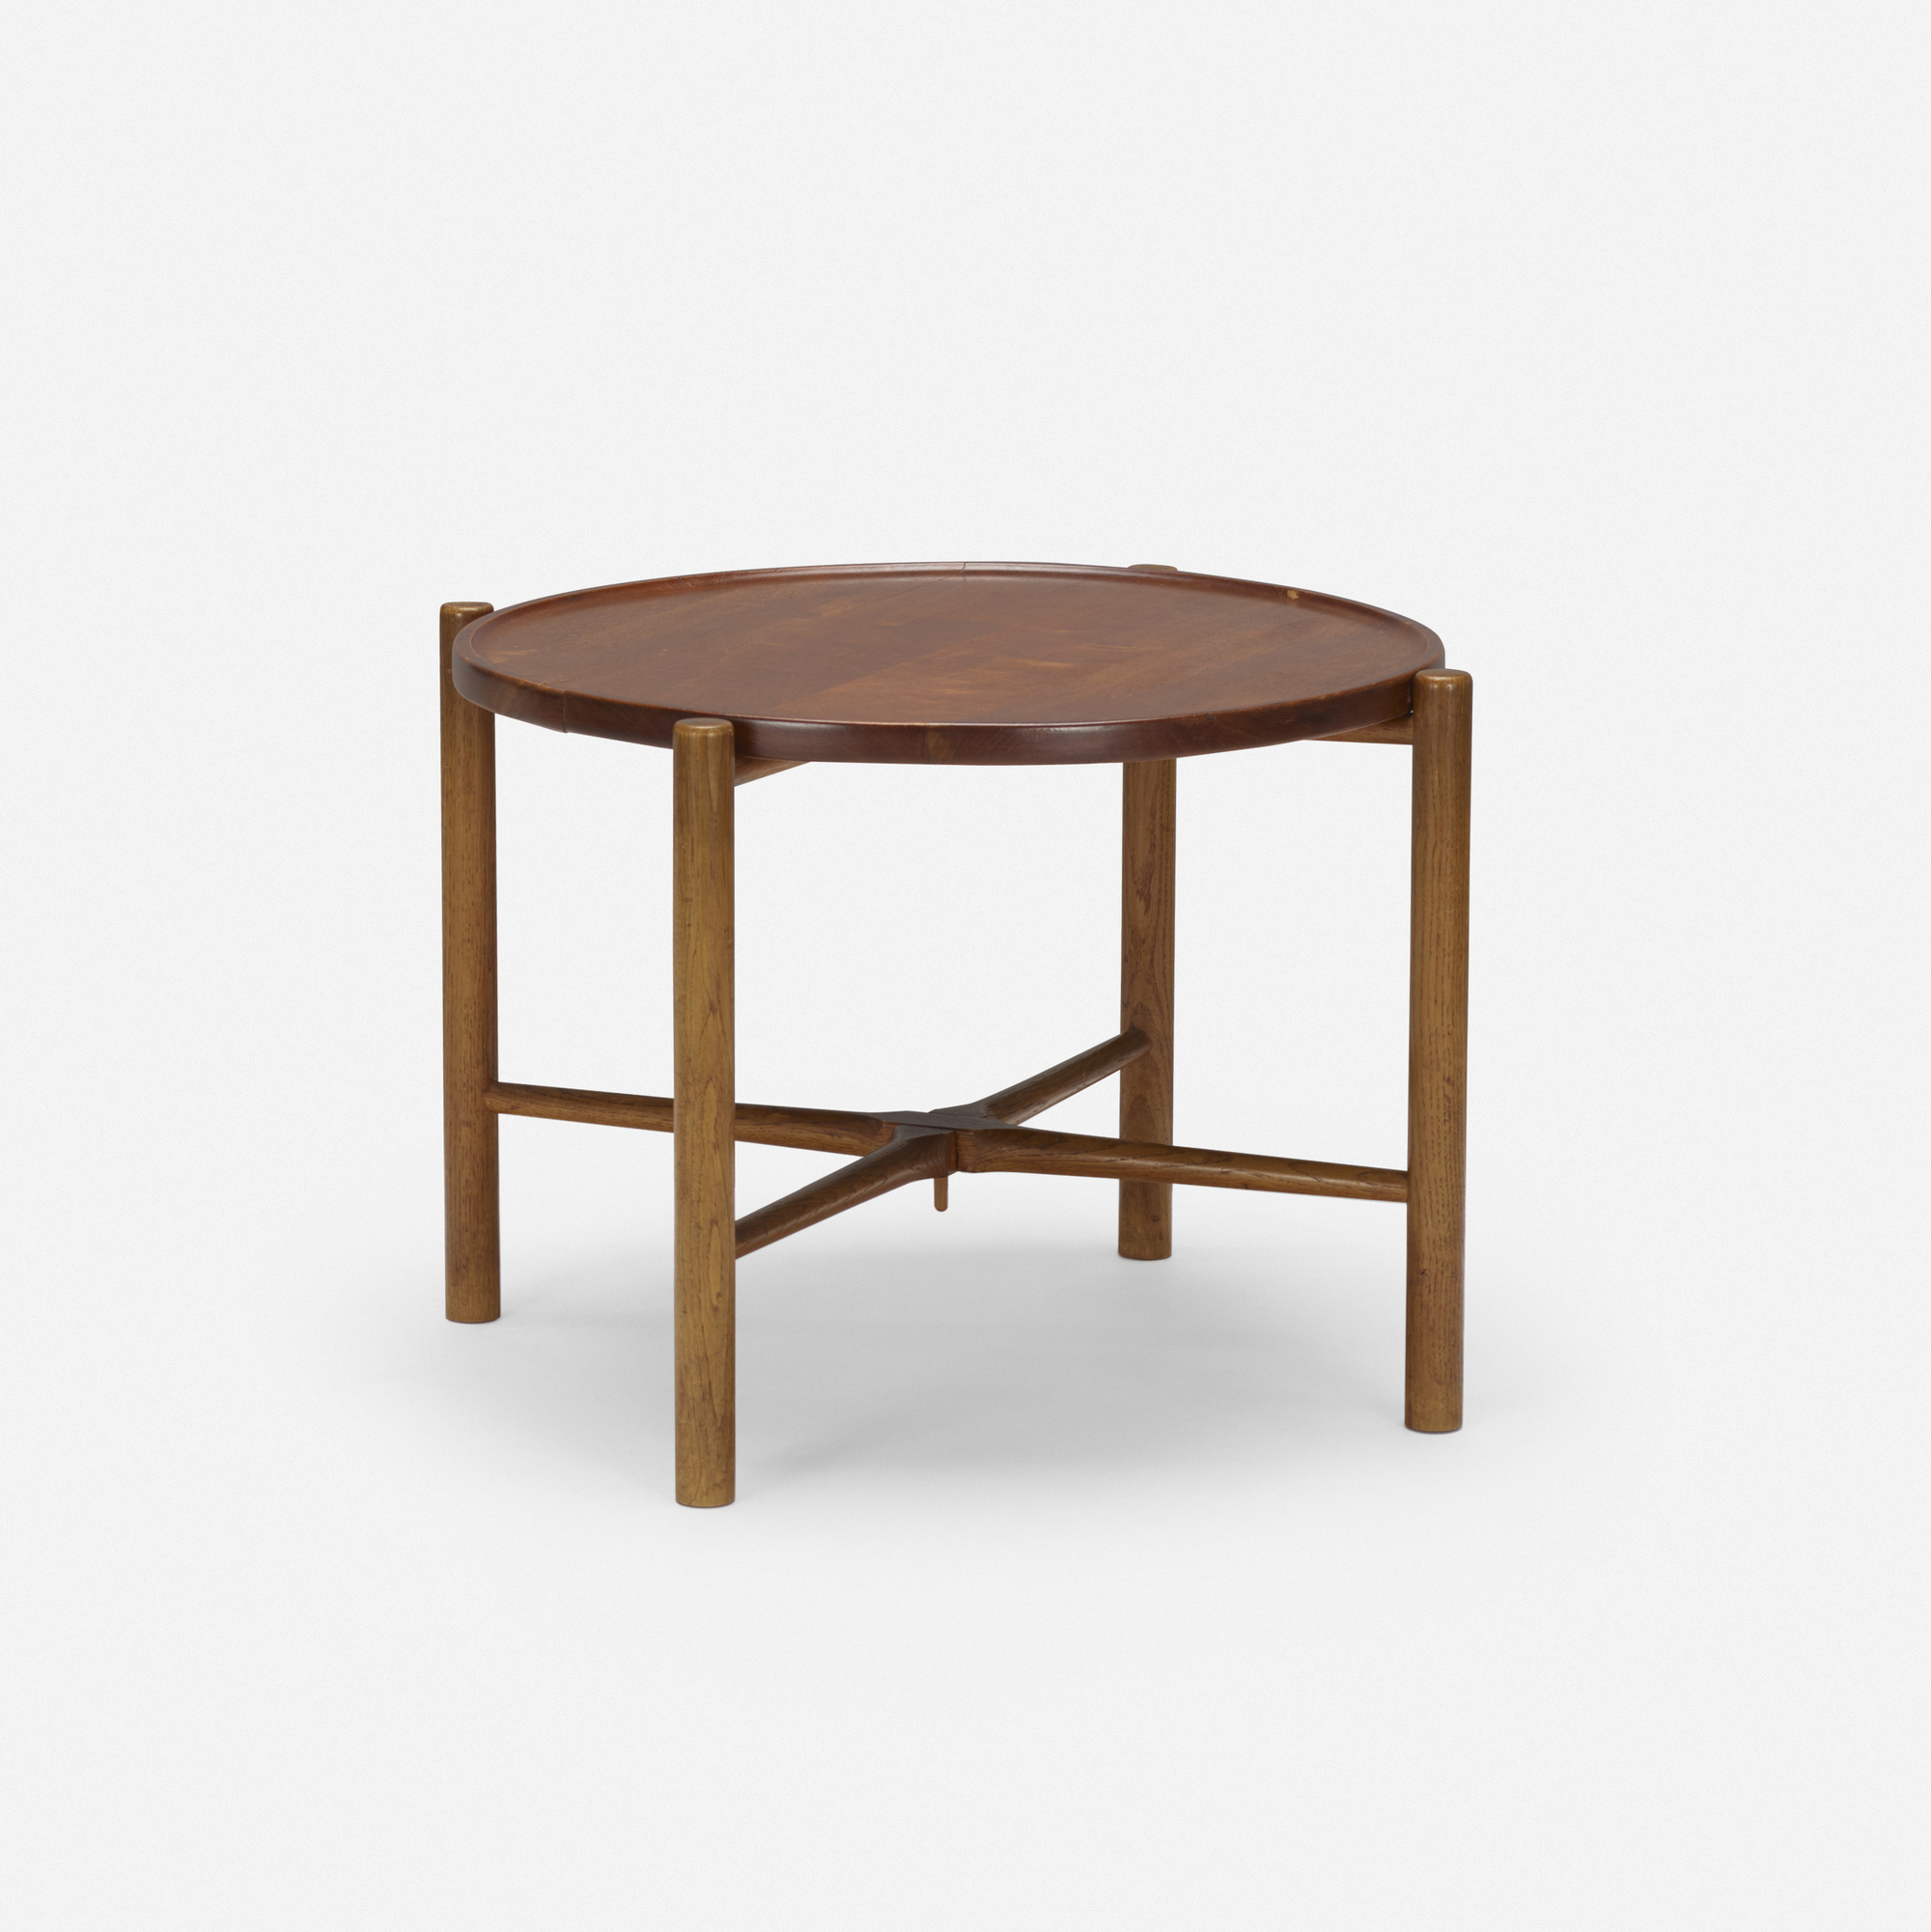 268 HANS J WEGNER folding tray table model AT35 Important